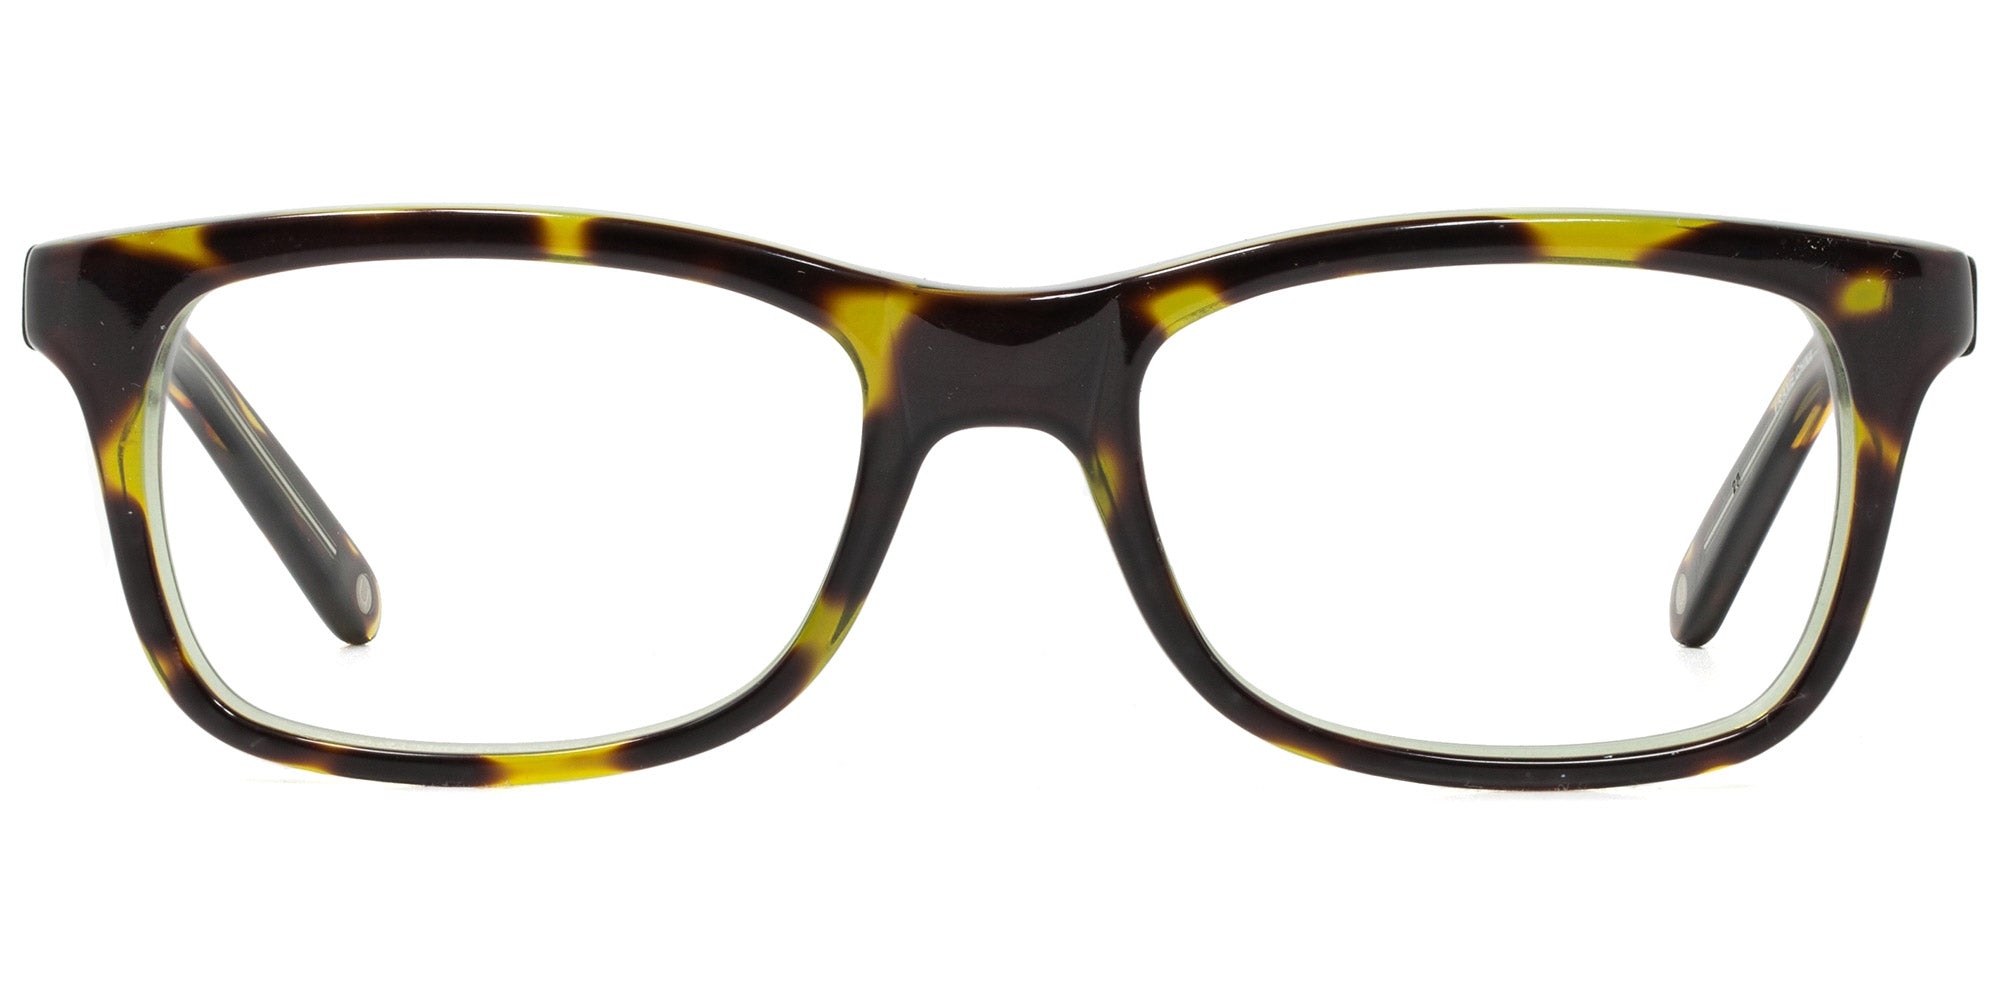 96e4b1a72da6 Nightingale Computer Glasses Frames - Umizato